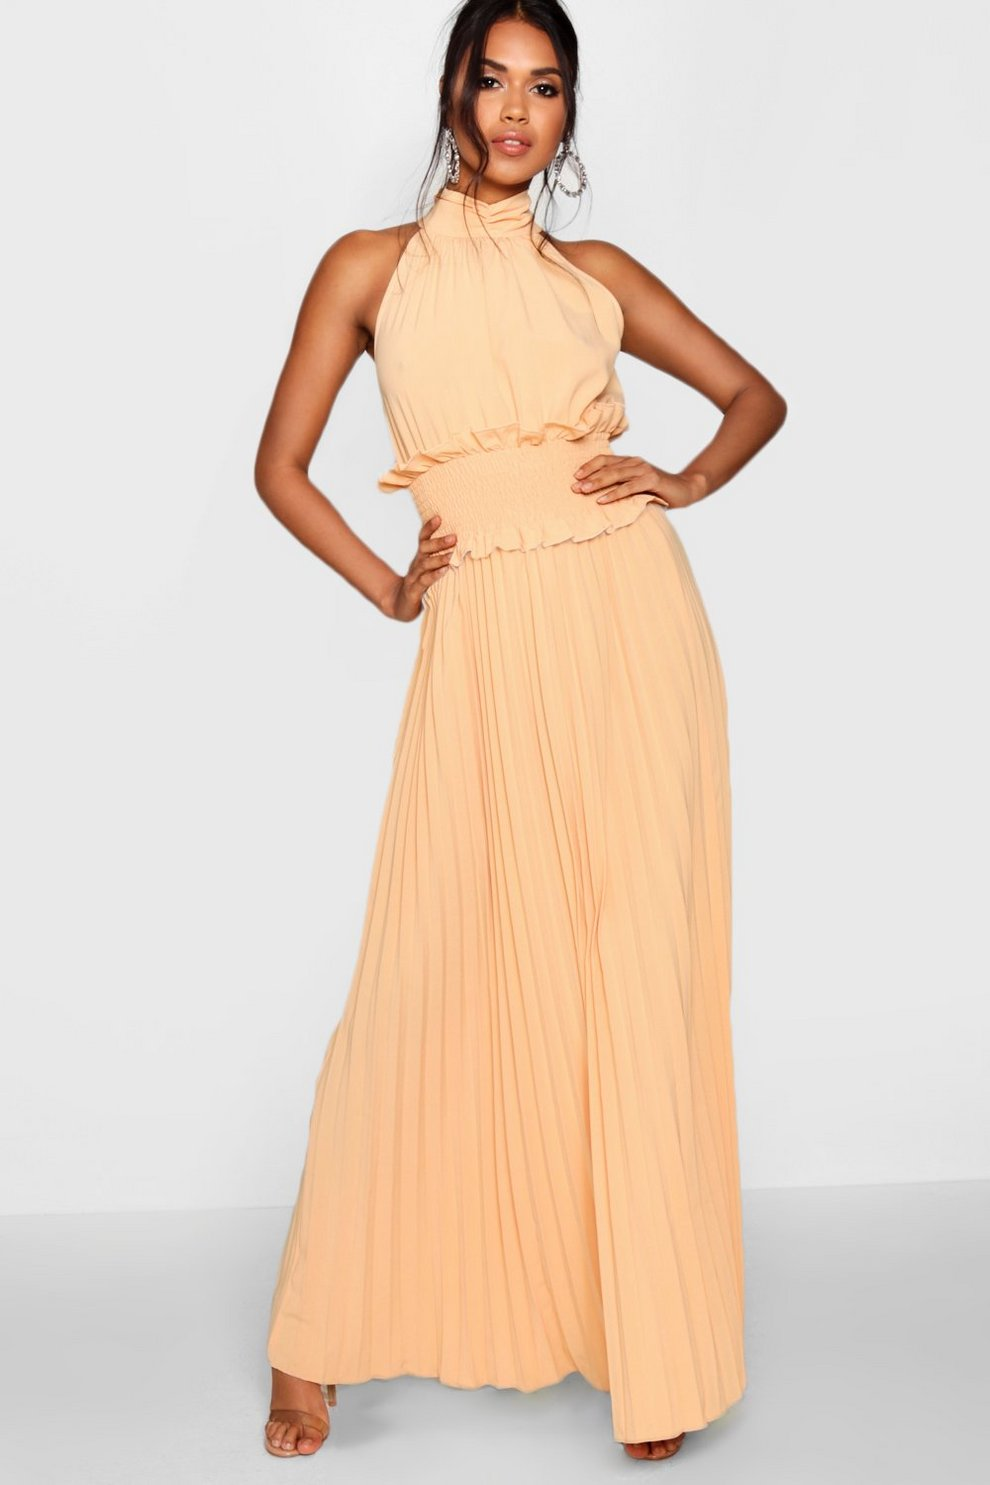 Boohoo Shirred Waist Pleated Maxi Dress Explore 100% Original For Sale VXIA9H